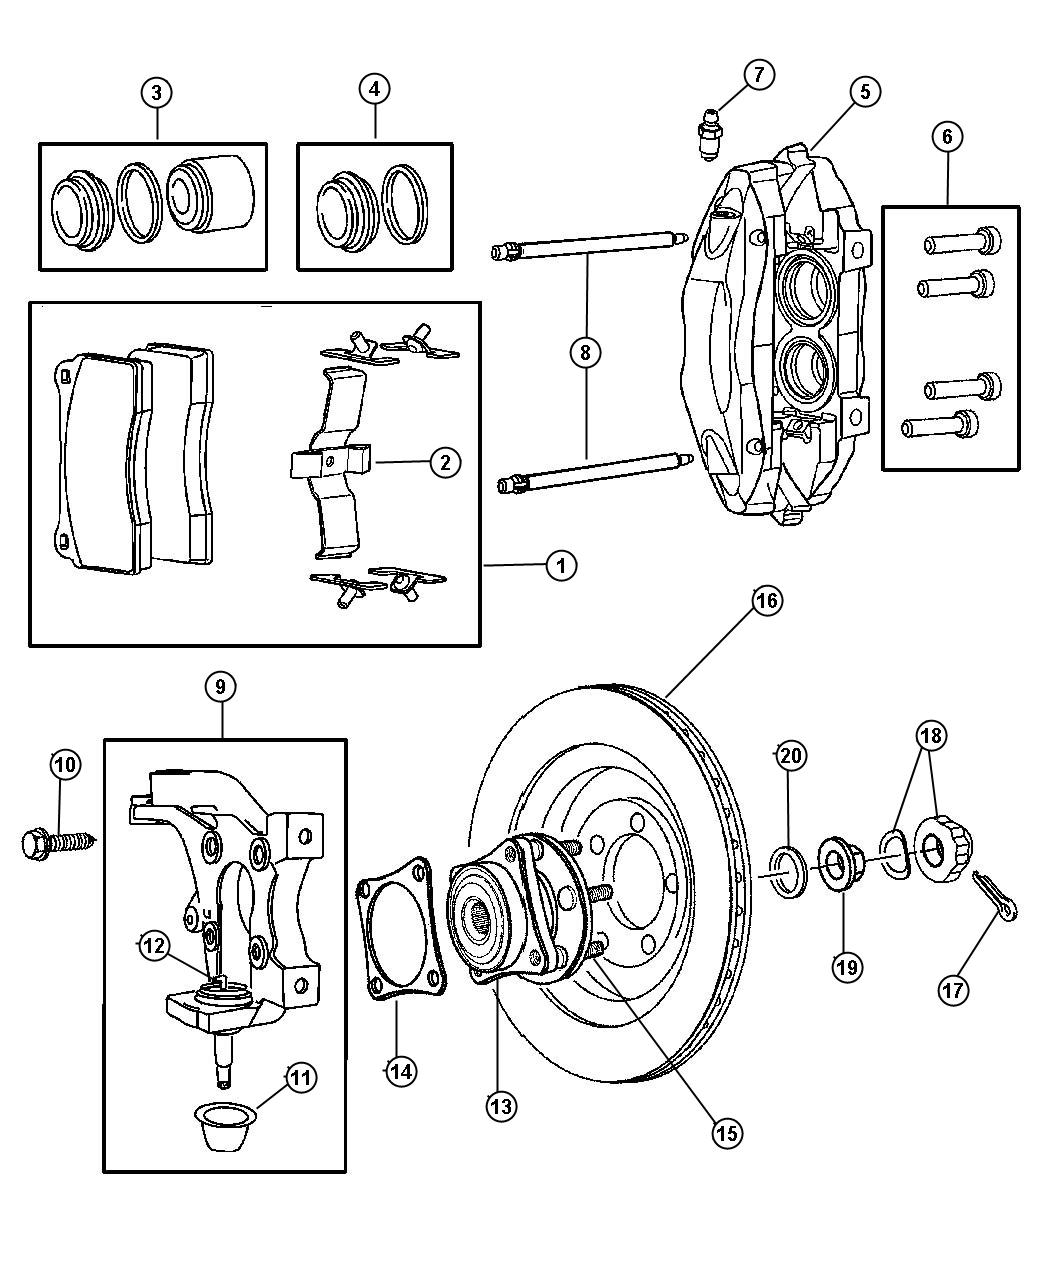 Dodge Ram Used For Hub And Bearing Brake Carbon